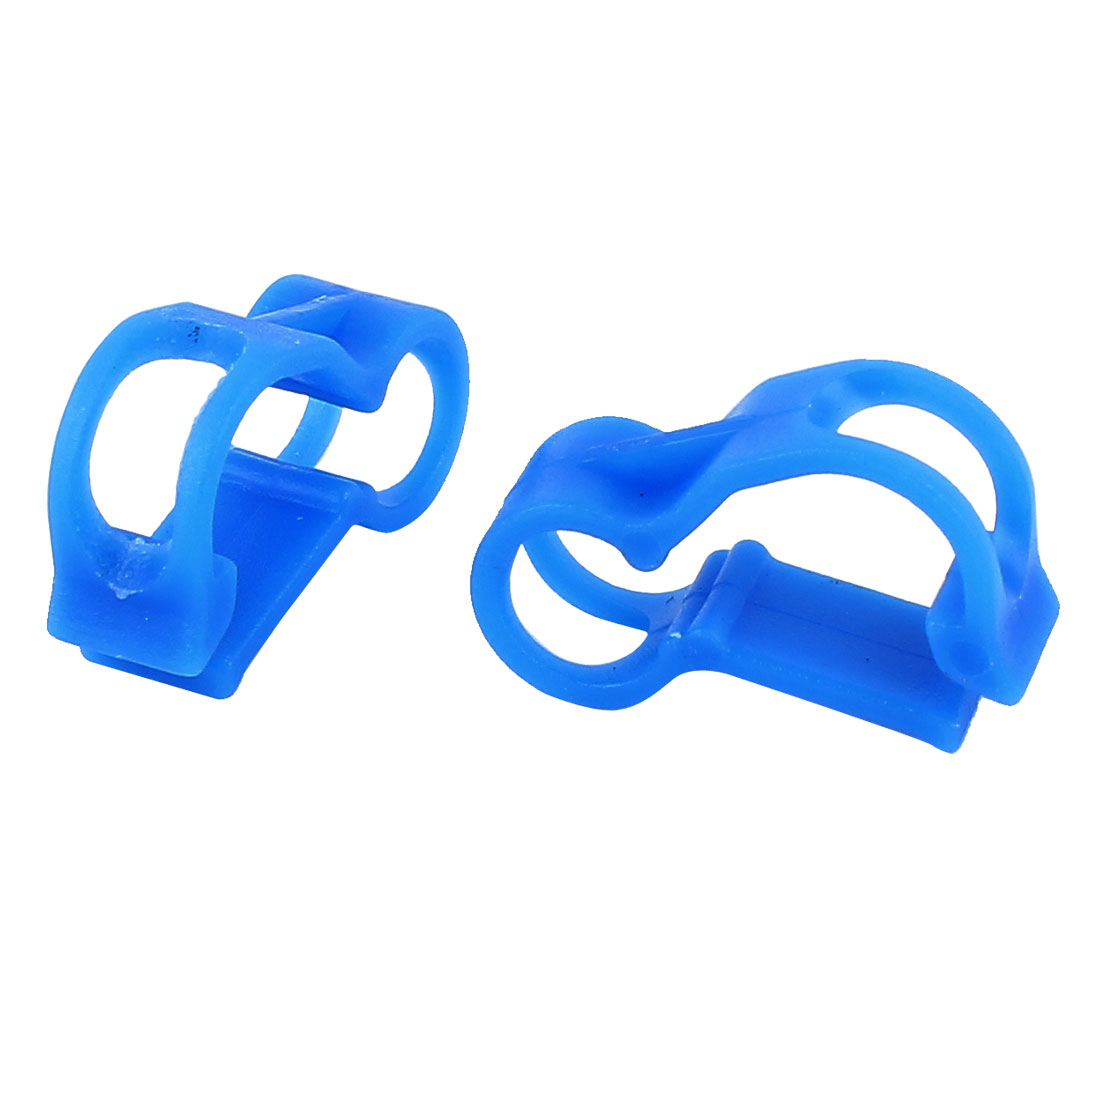 2 Pcs RC Nitro 5mm Dia Fuel Line Tubing Clamp Pinch Clip Blue